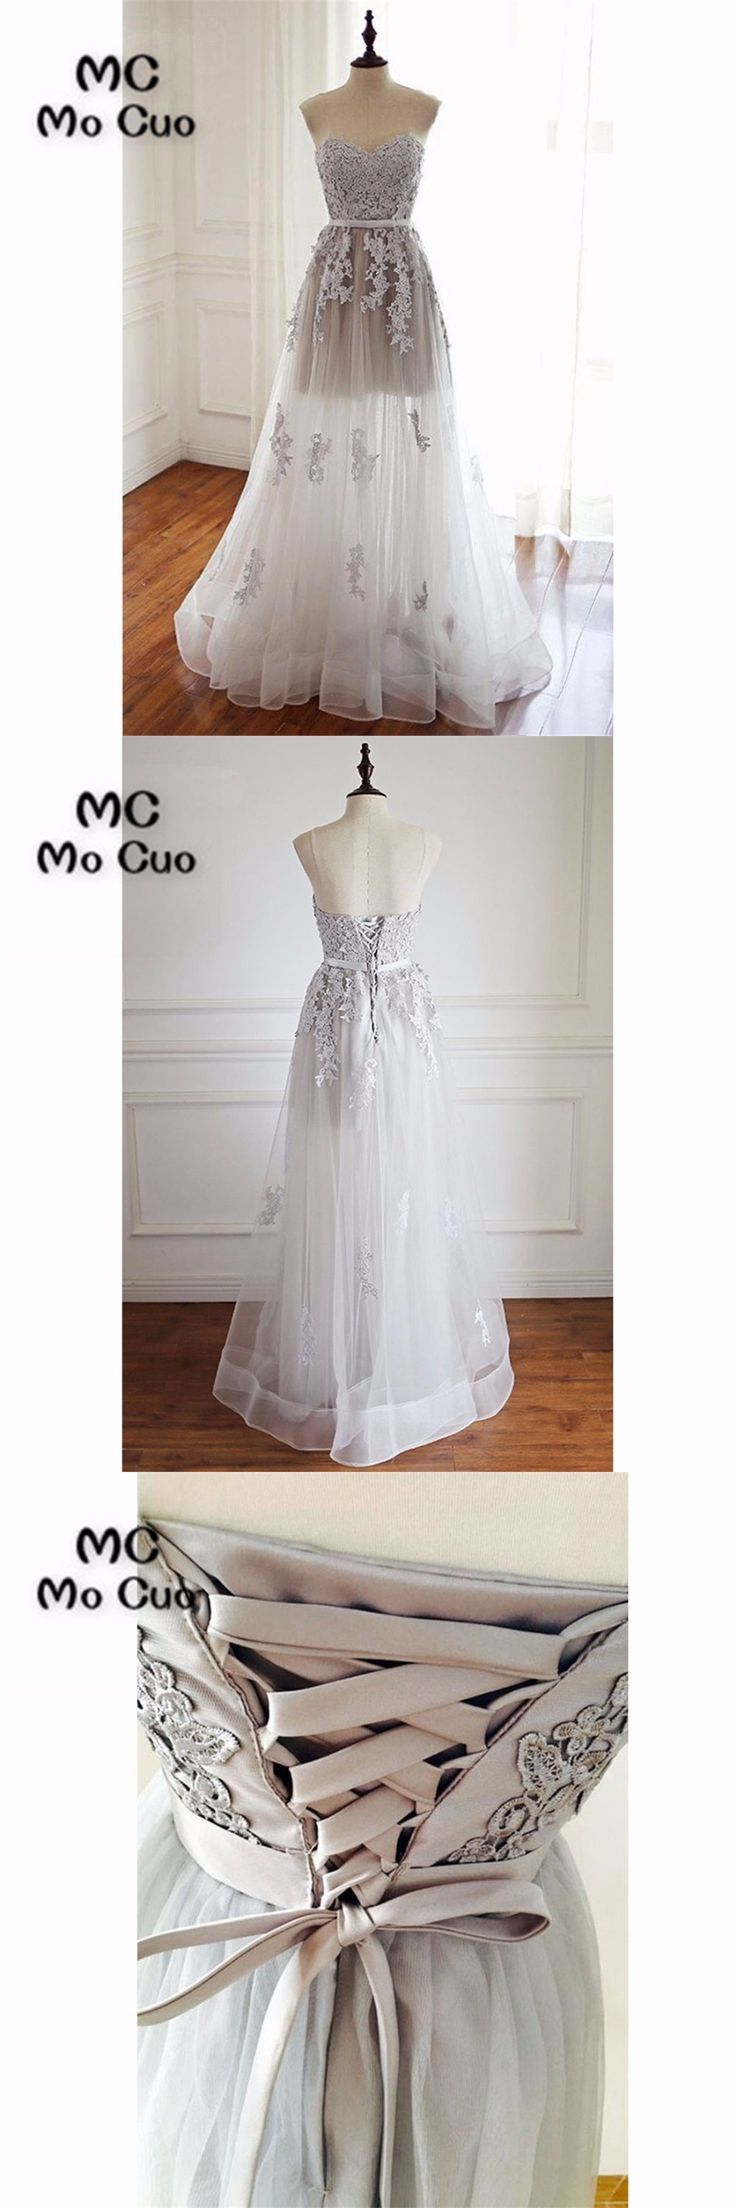 2018 Illusion Prom dresses Long with Appliques Lace Up Tulle Sweetheart dress for graduation Formal Evening Prom Dress